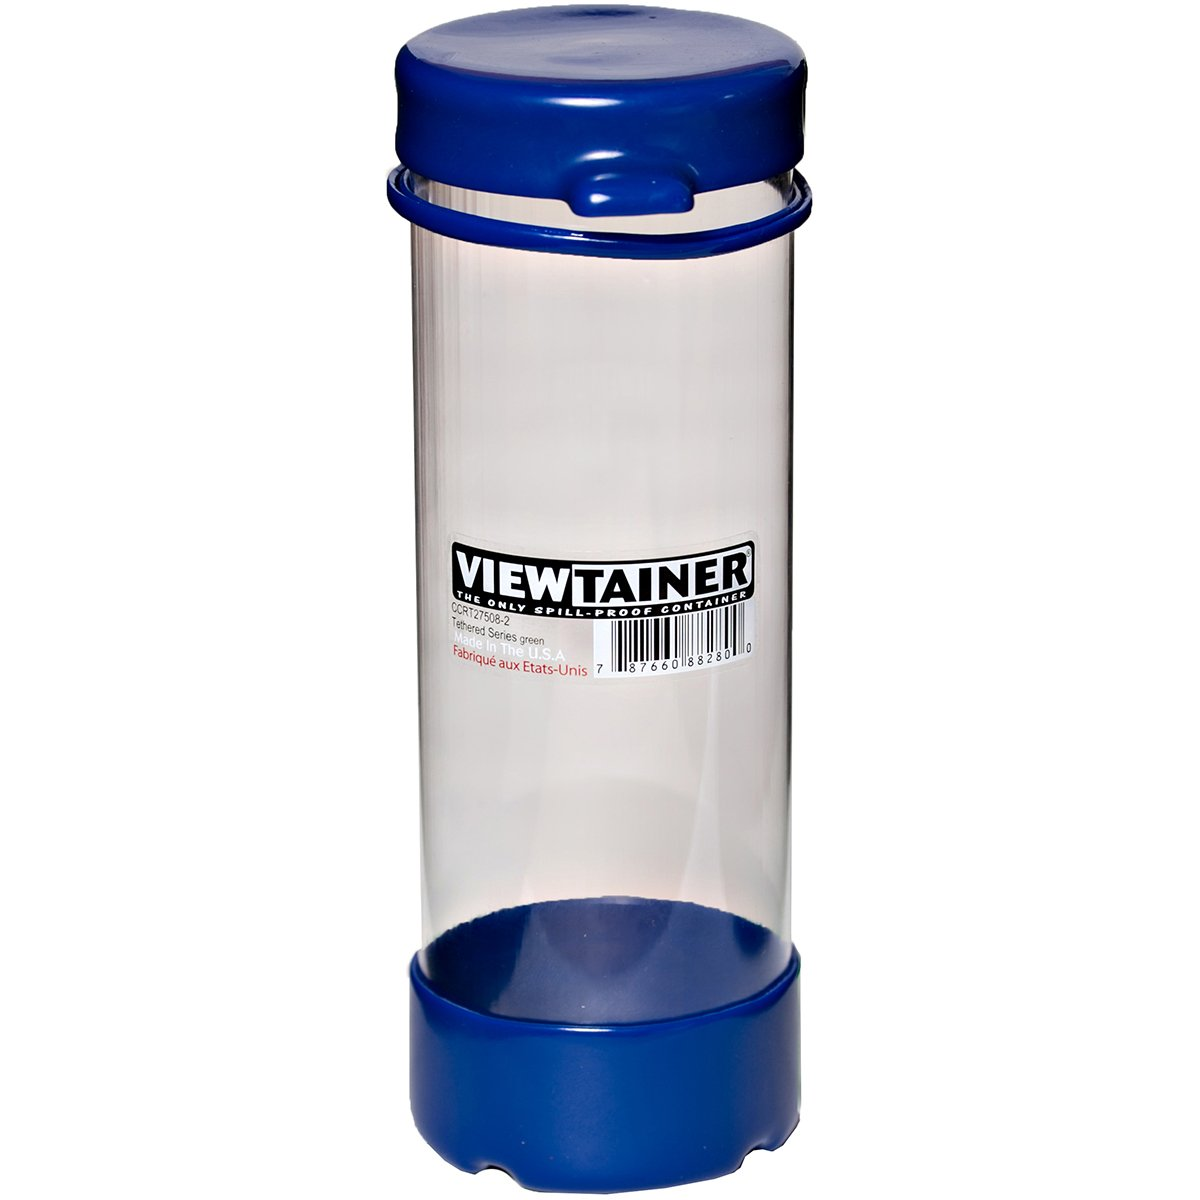 Viewtainer CCRT27508-3 Blue Tethered Cap Storage Container, 2.75X8 2.75X8